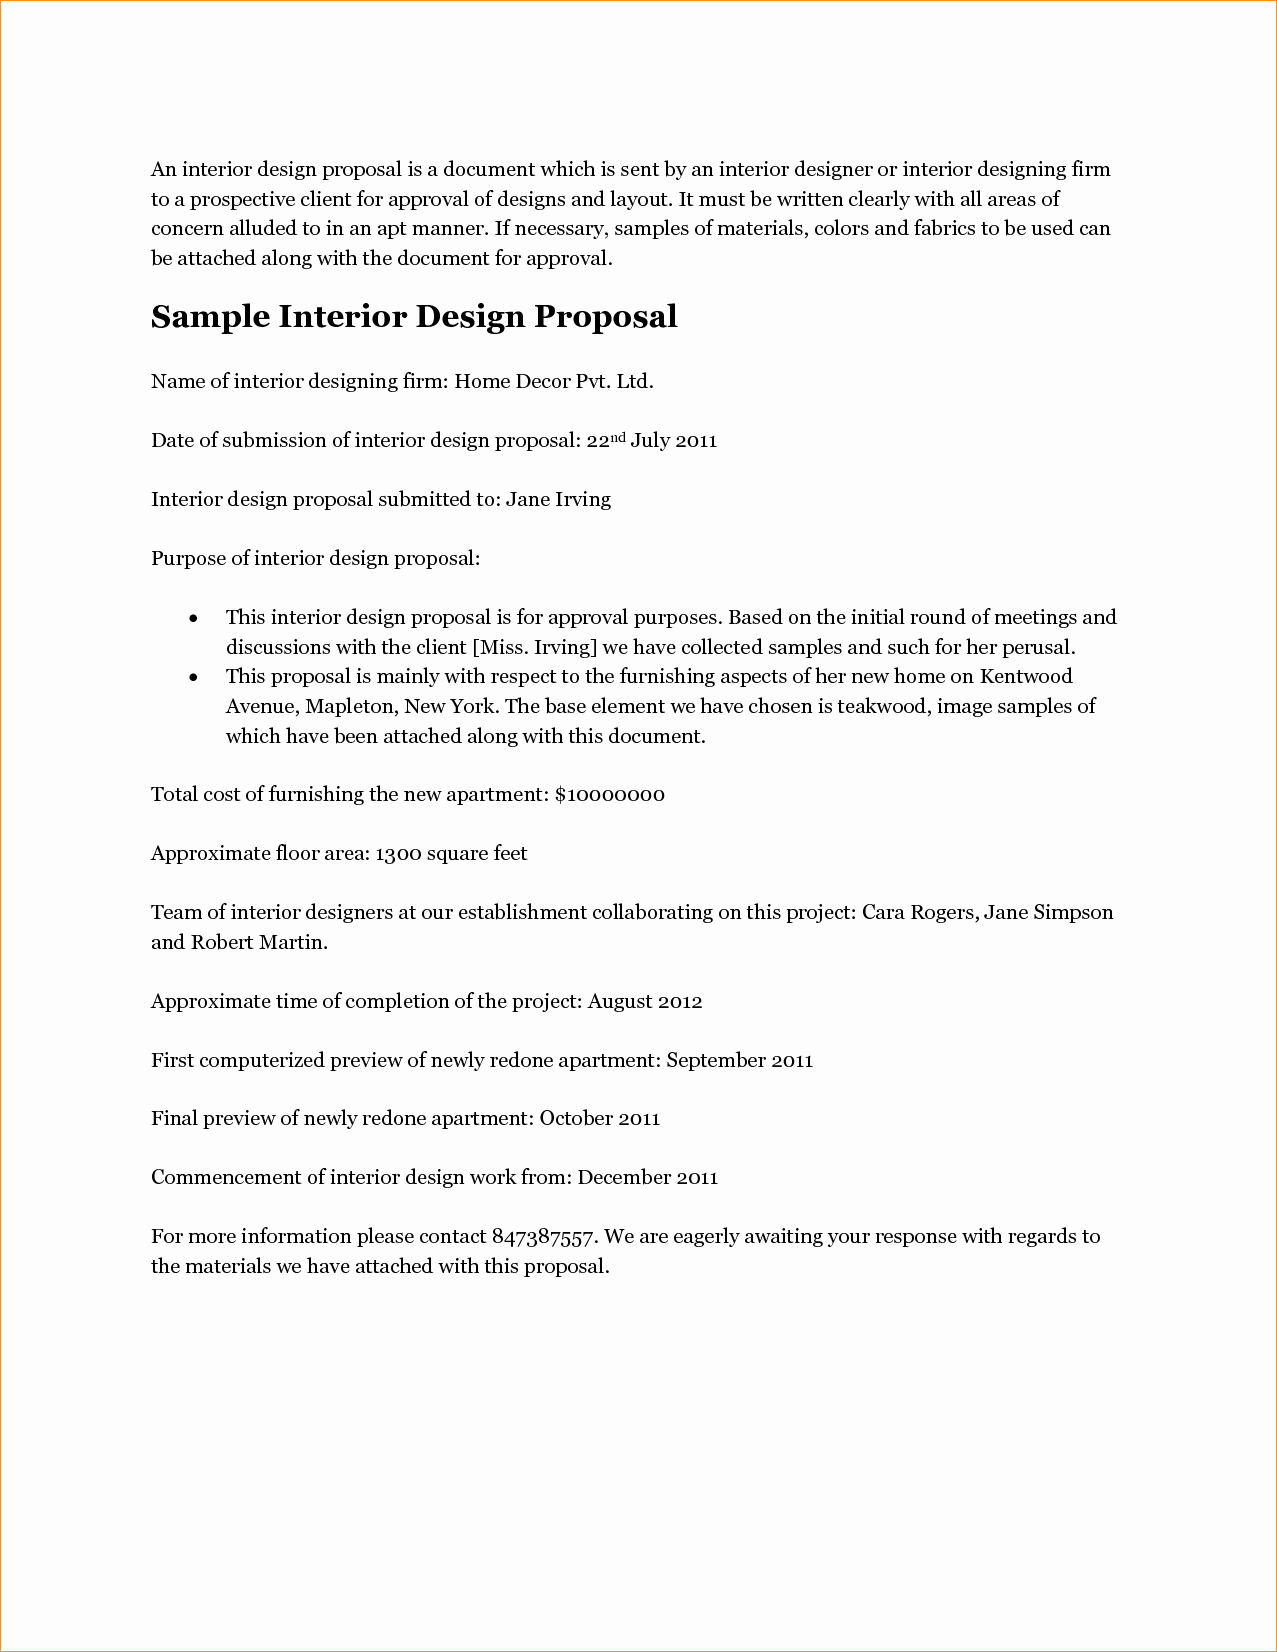 Interior Design Proposal Template Inspirational Design Proposal Template Business Proposal Templated